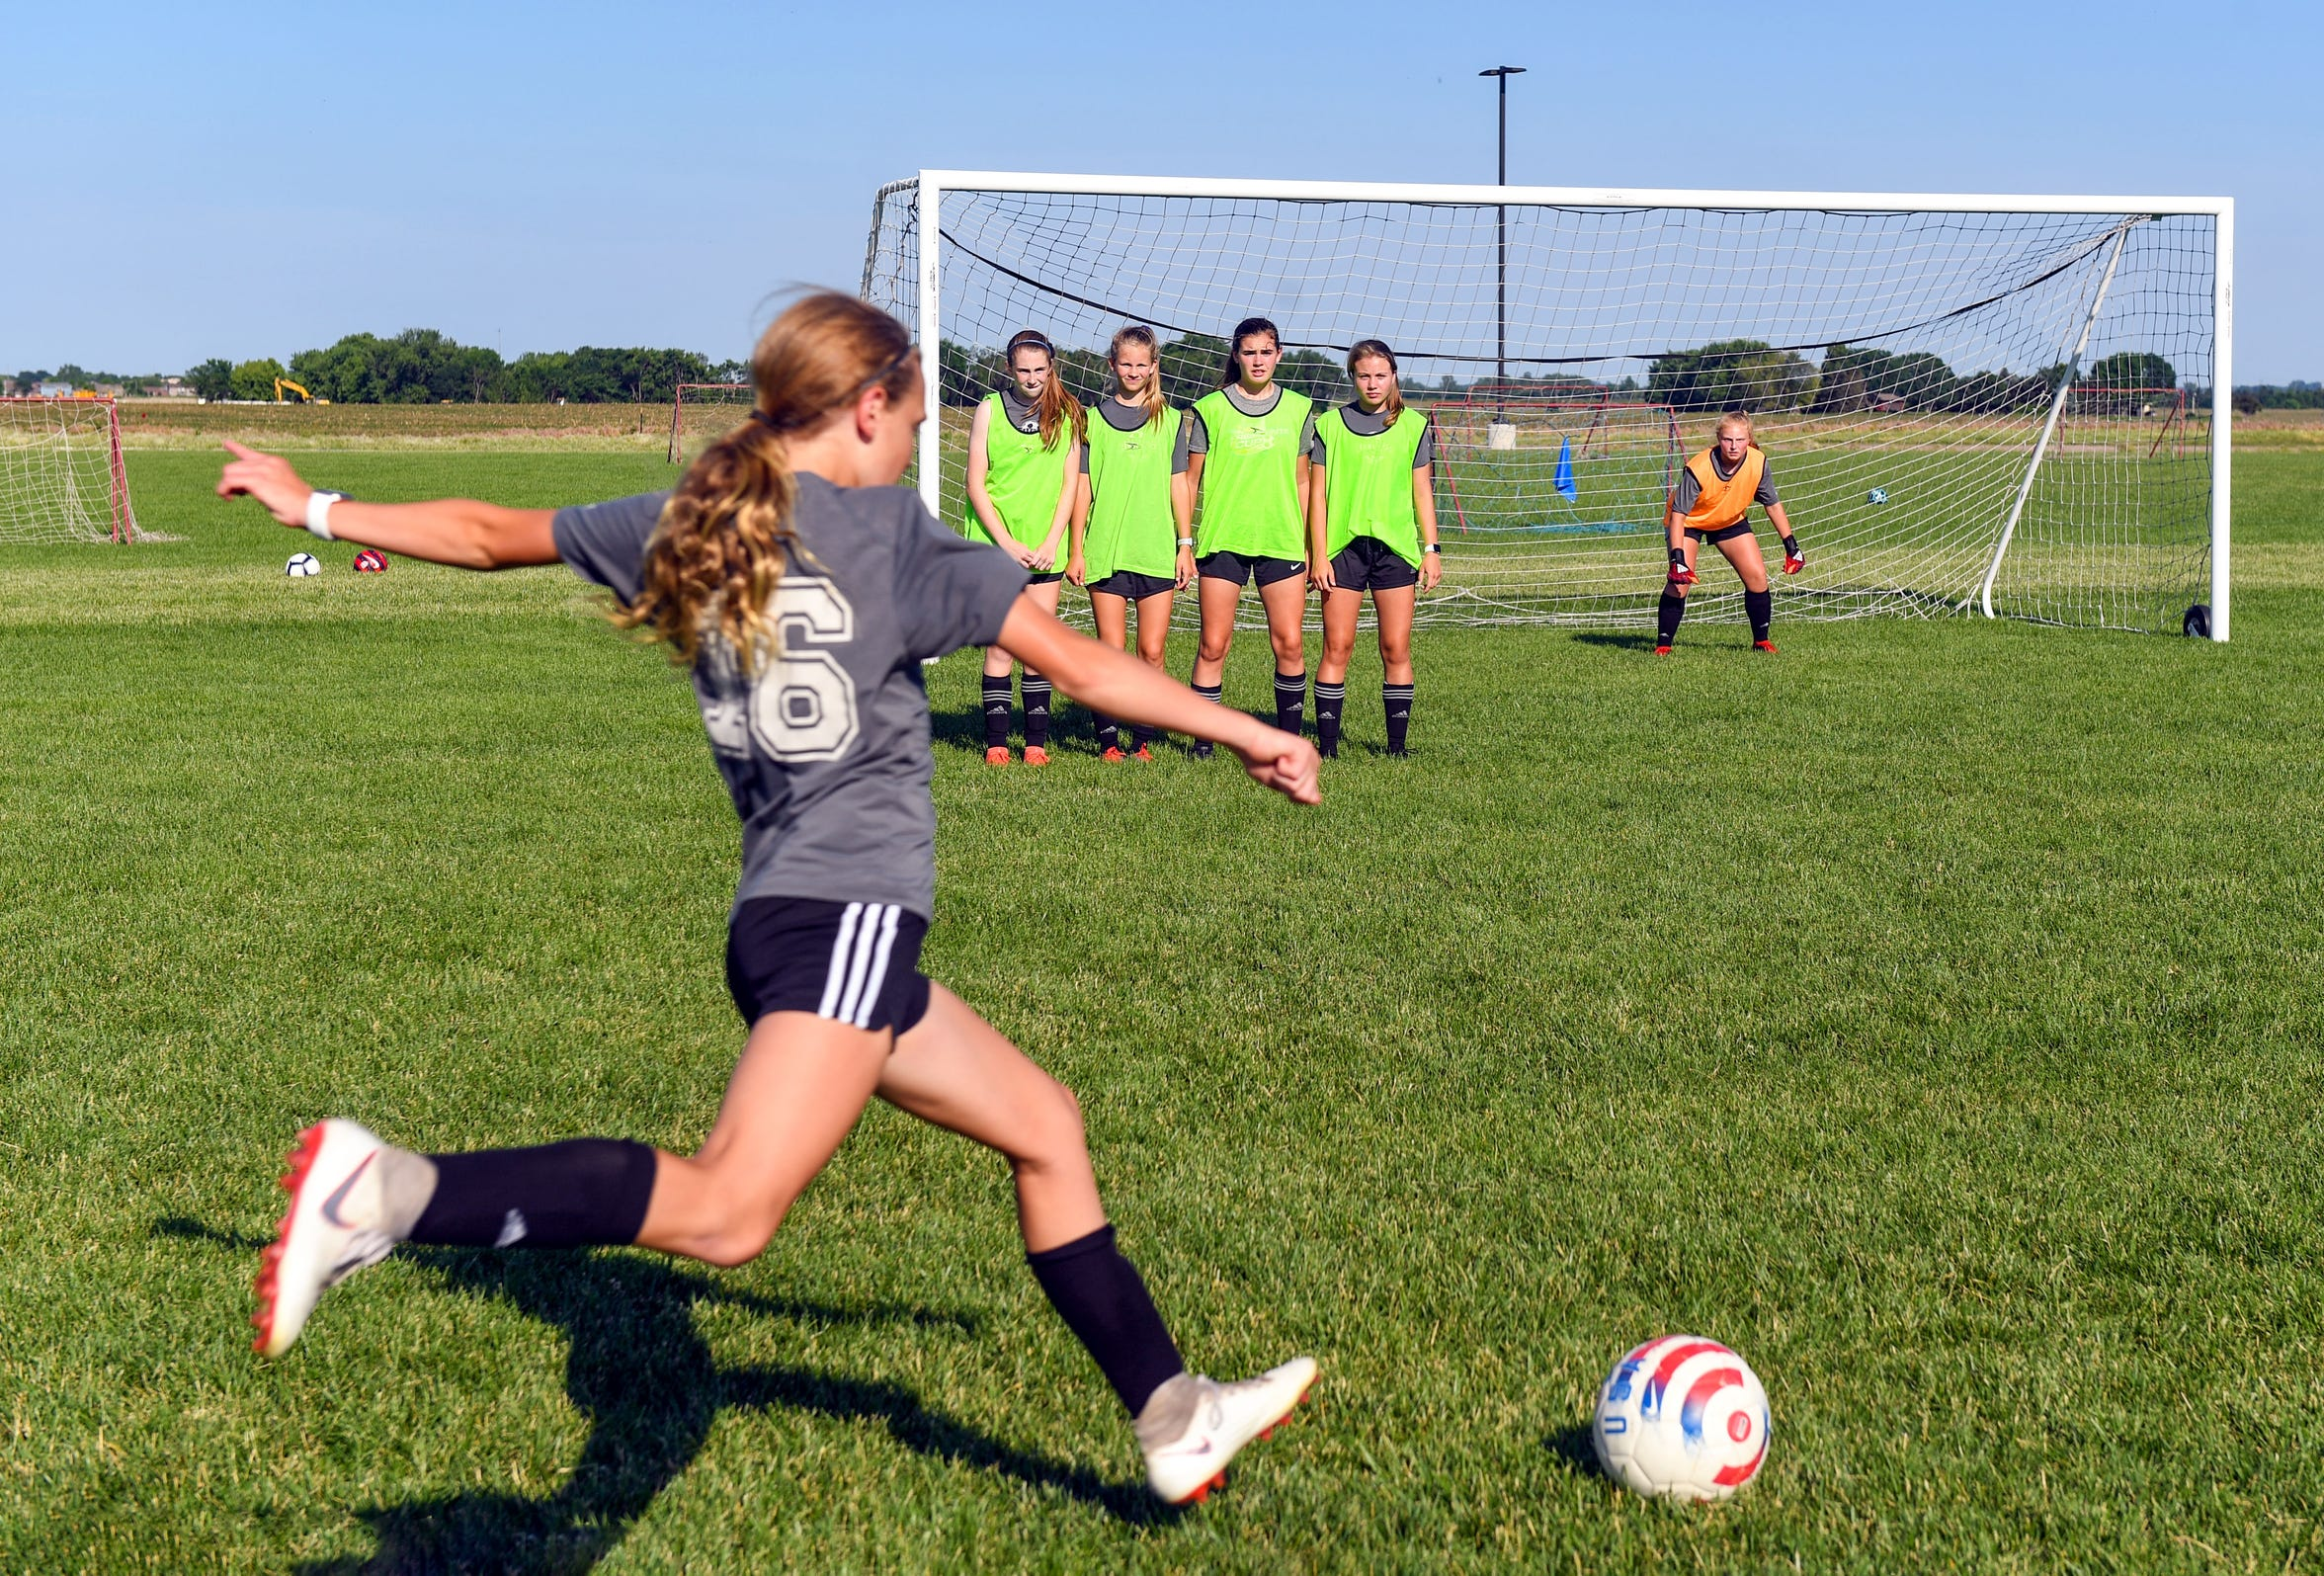 A player on the Dakota Alliance soccer team for girls ages 13-14 aims a kick toward the goal during practice Wednesday, June 26, at the Harrisburg Training Grounds.